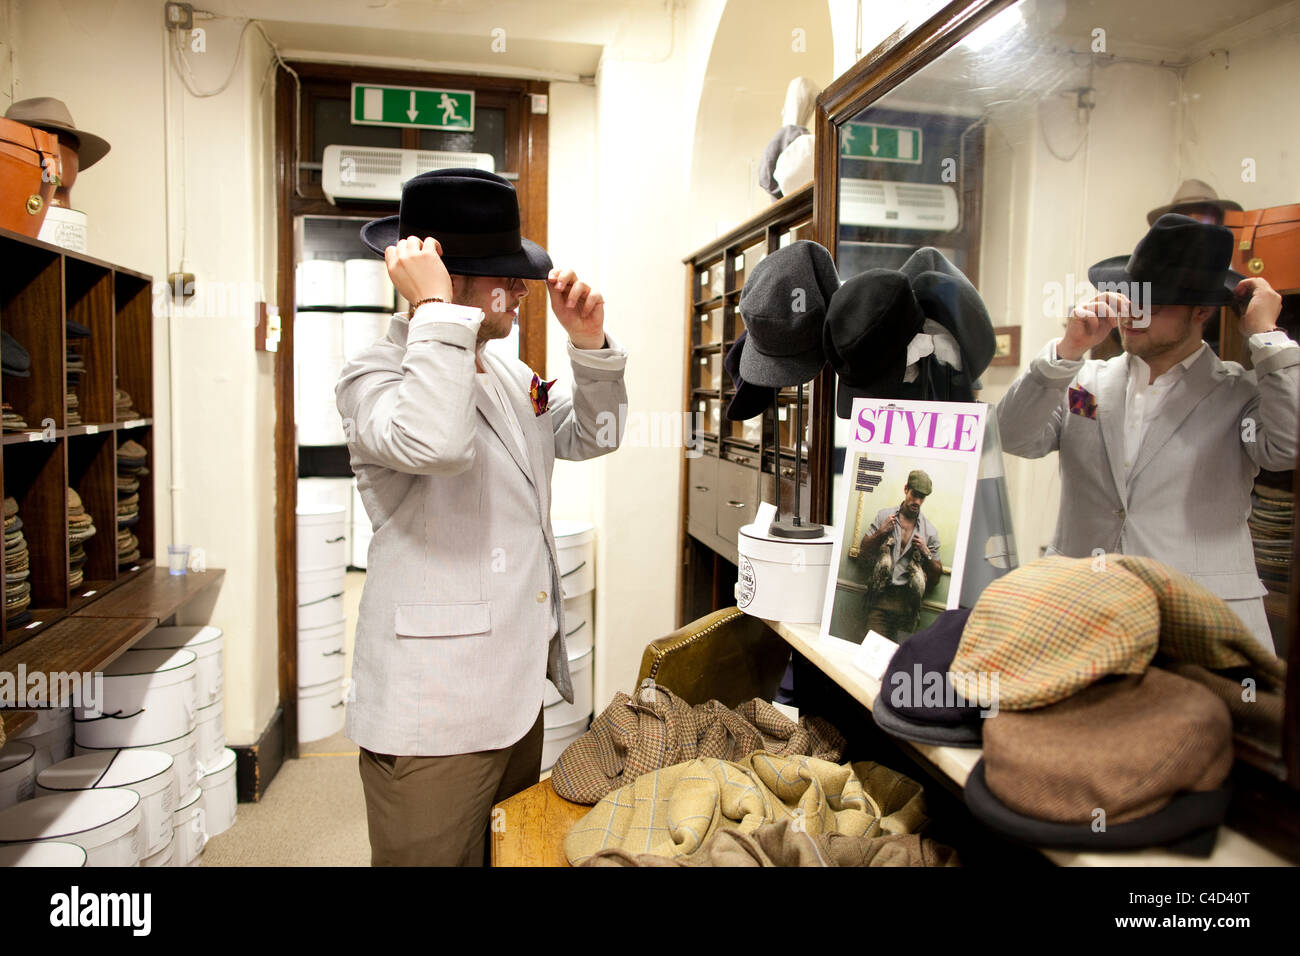 654c9d1a Man trying fedora hats at Lock & Co hatters, St.James's Street, London